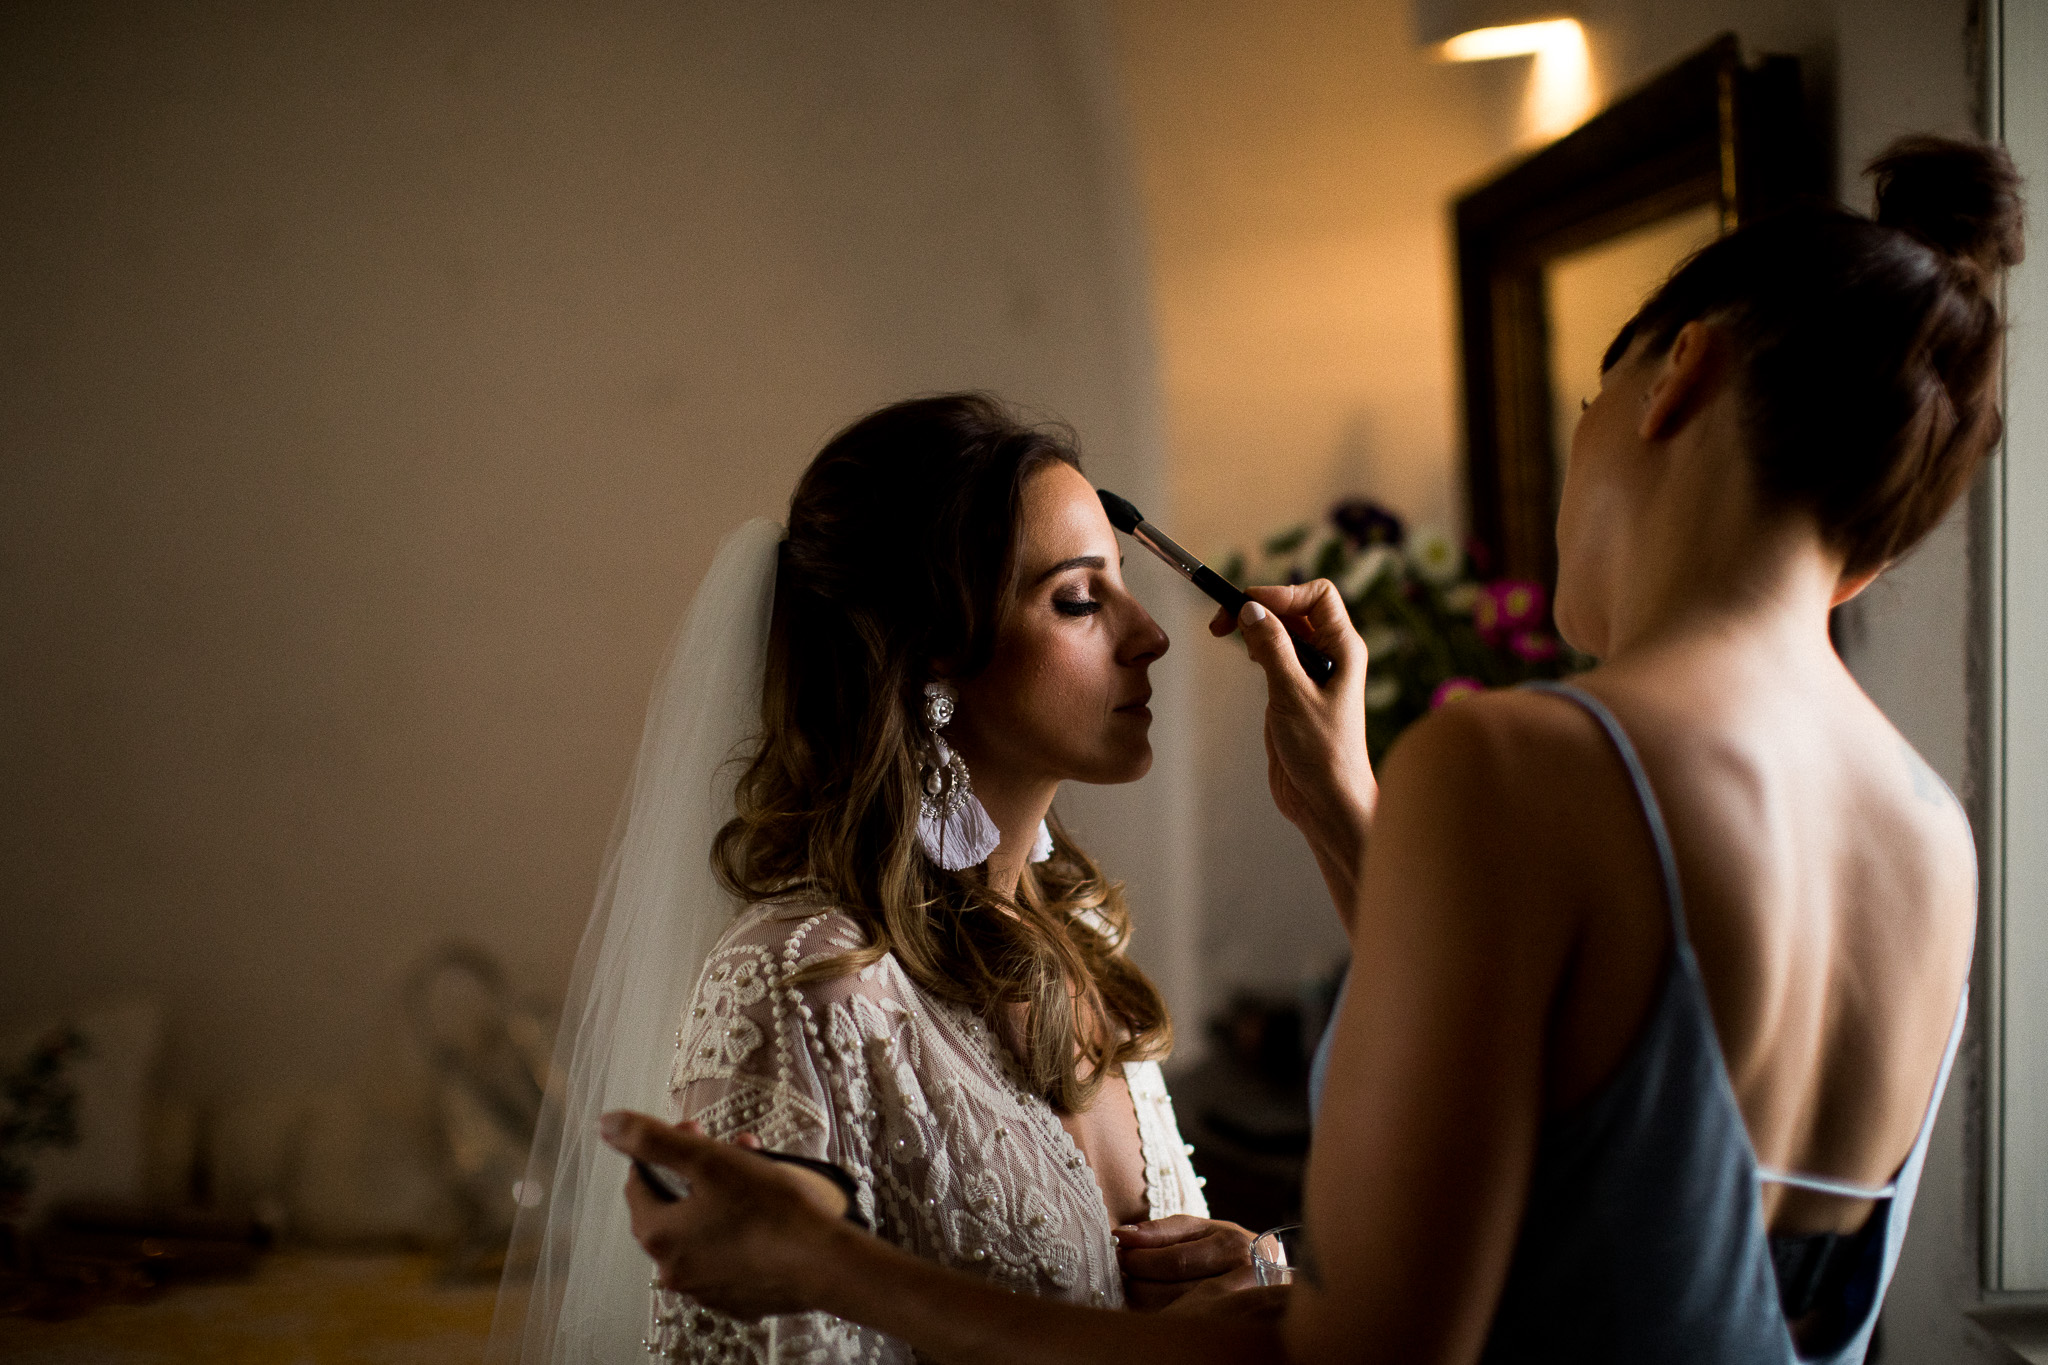 %wedding makeup london% bridal makeup london